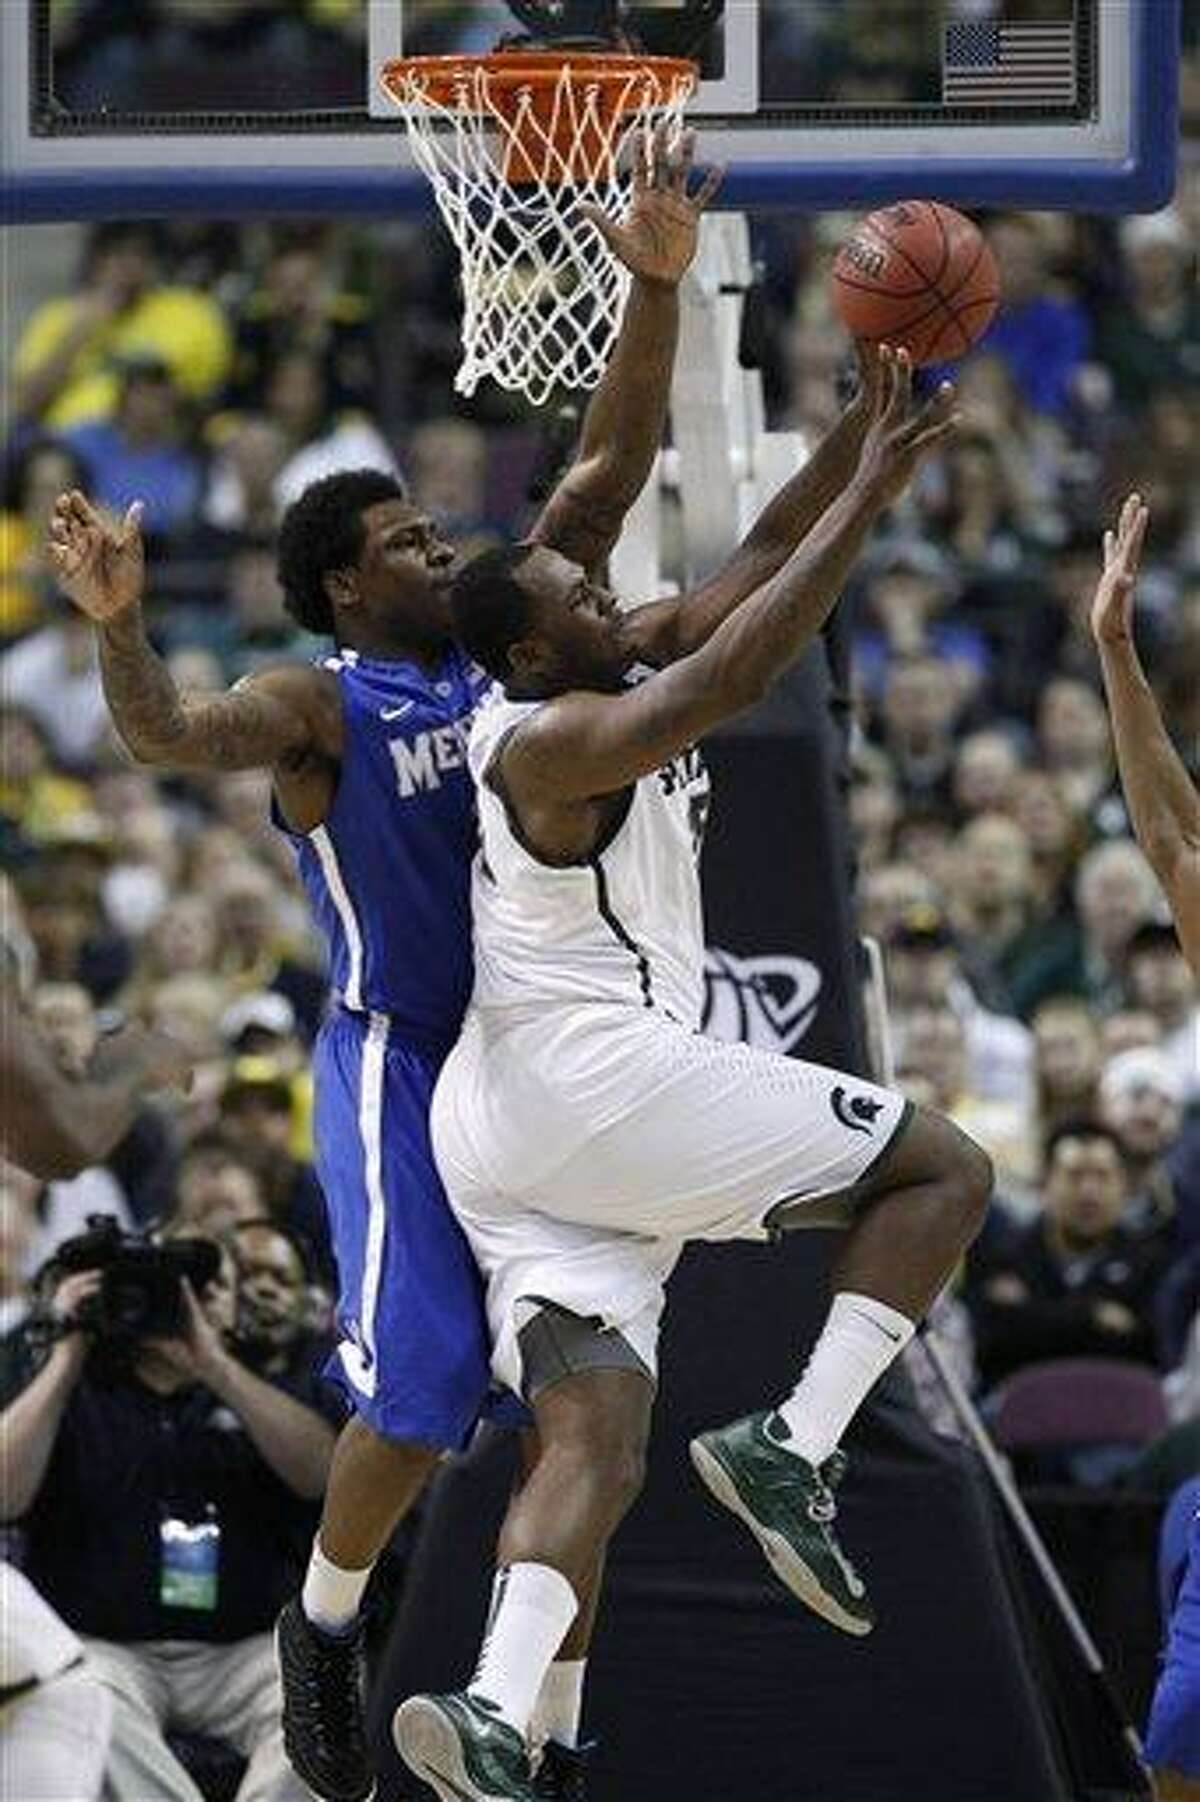 Michigan State forward Derrick Nix is forced to pass the ball against the defense of Memphis forward Tarik Black, left, in the second half of a third-round game of the NCAA college basketball tournament Saturday, March 23, 2013, in Auburn Hills, Mich. (AP Photo/Duane Burleson)